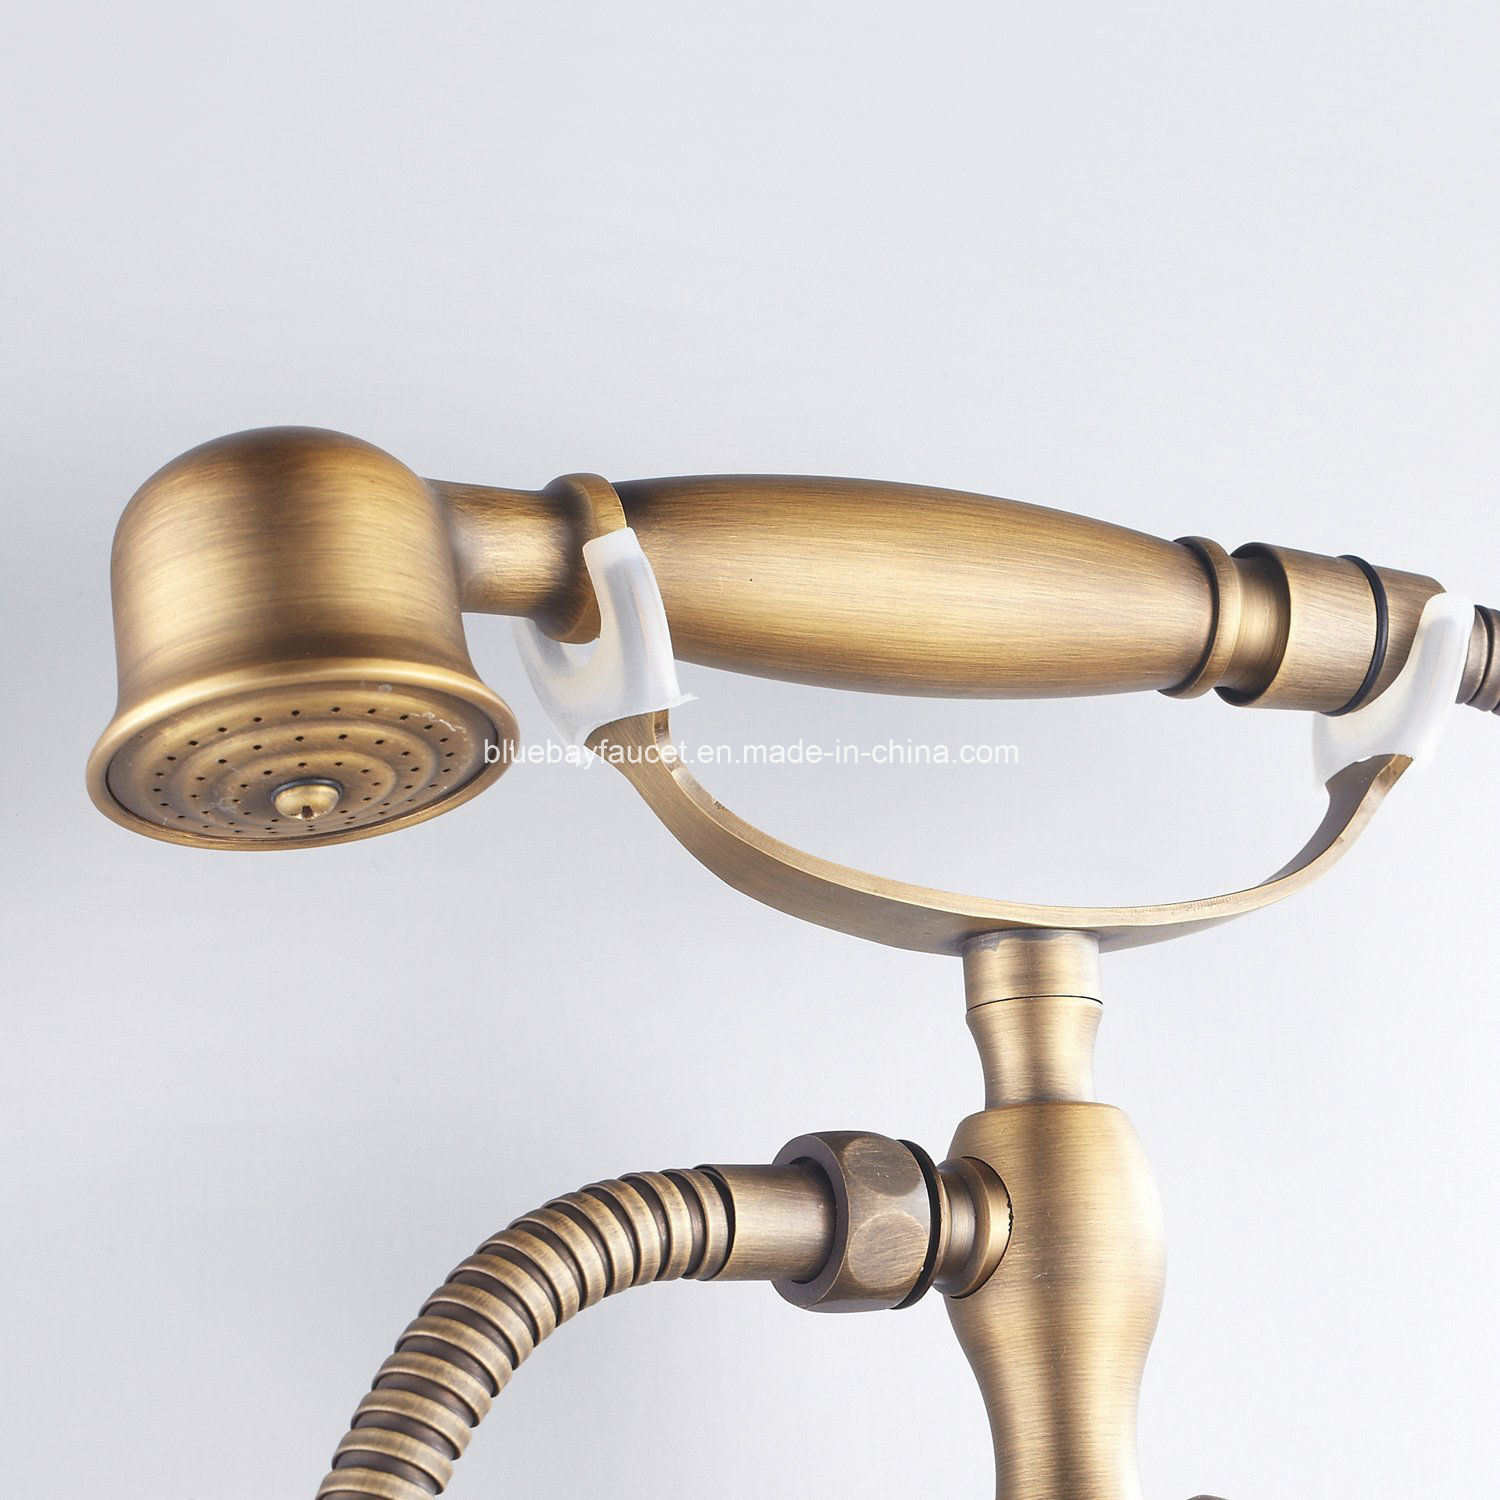 Wenzhou Artistic Wall-Mounted Double Handle Brass Bath Shower Faucet with Telephone Hand Shower